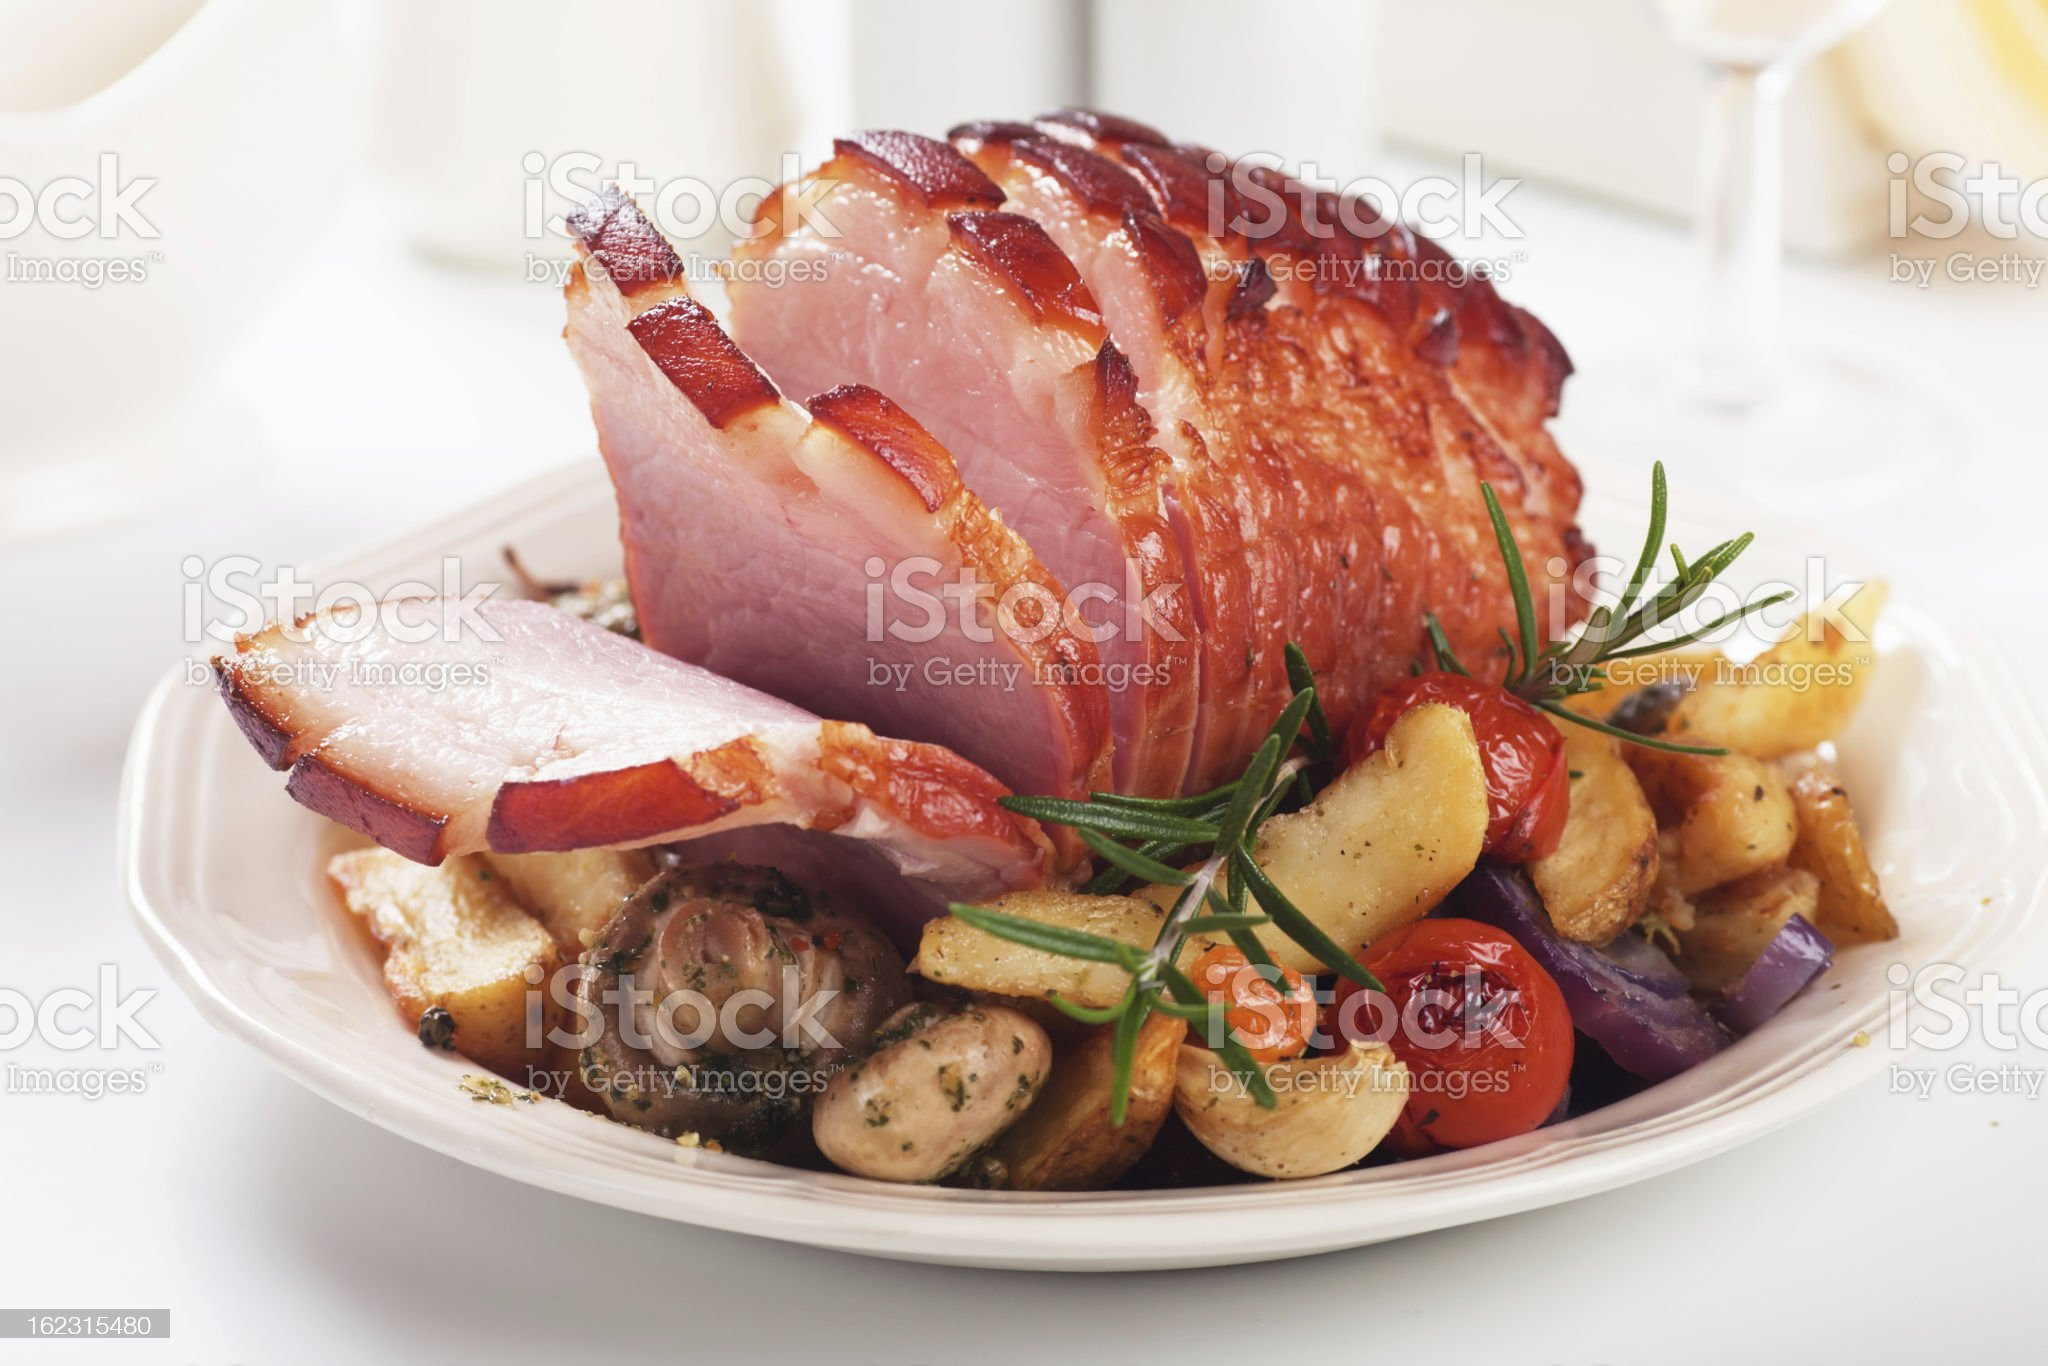 Roasted ham with vegetables royalty-free stock photo